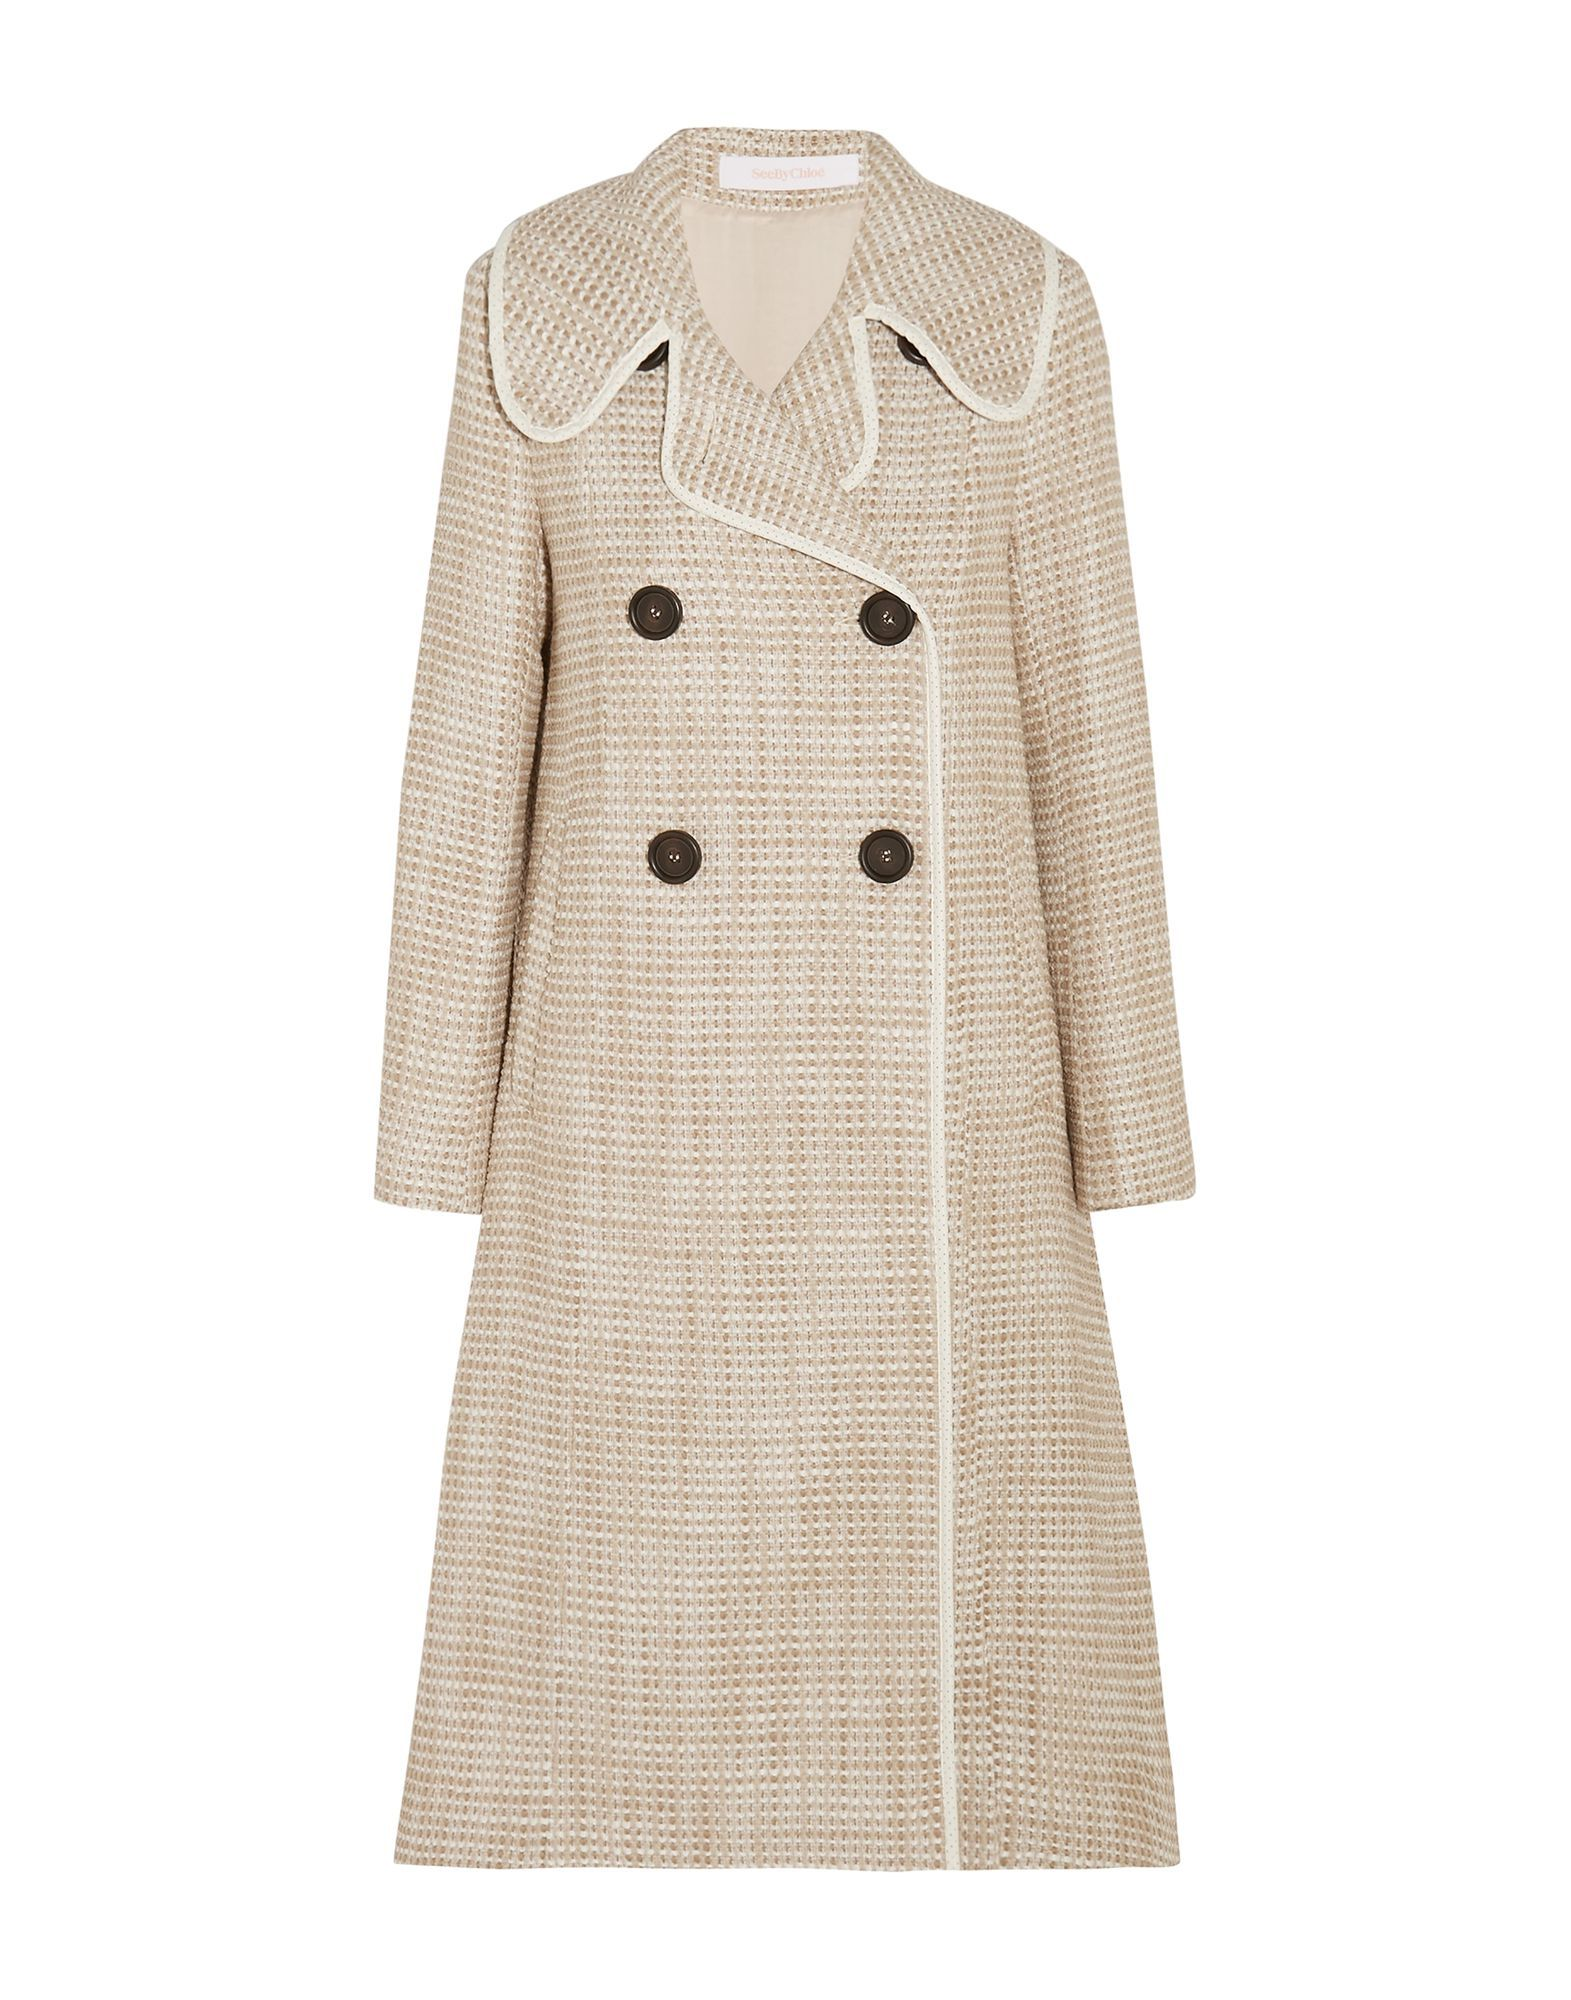 COATS & JACKETS See By Chlo� Beige Woman Acrilyc